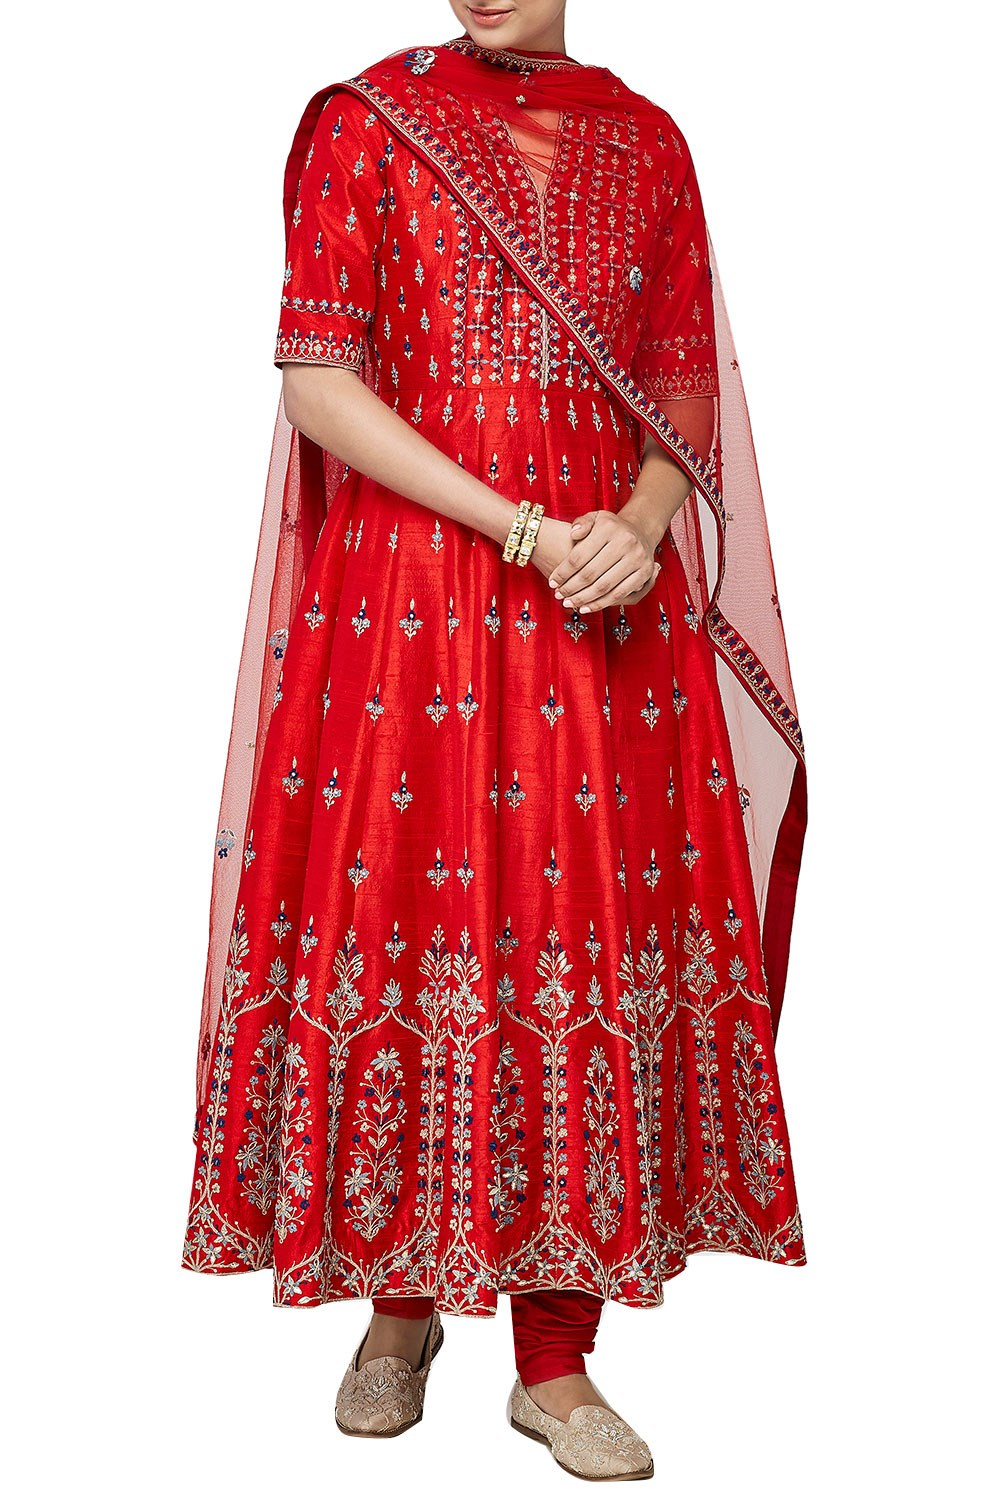 Red Color Anarkali in Dupion Silk